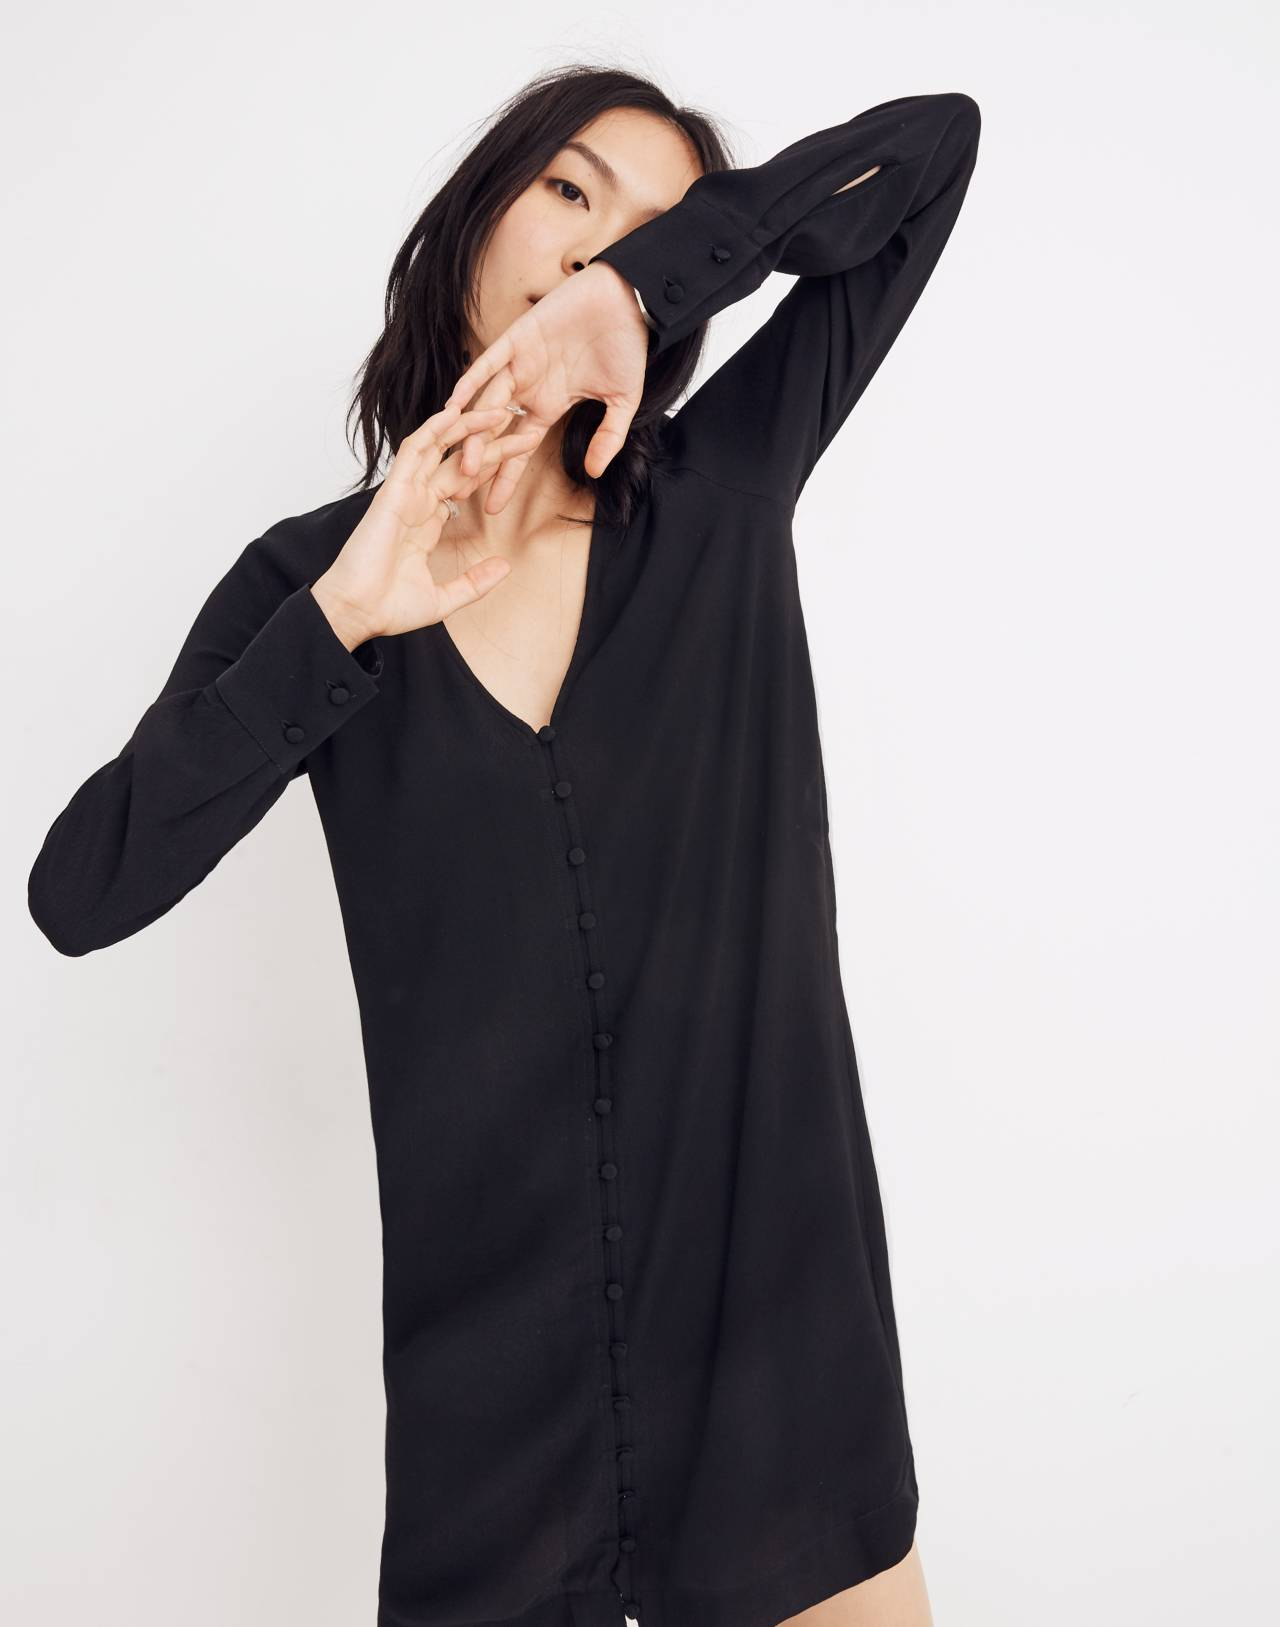 Heather Long-Sleeve Button-Front Dress in true black image 1